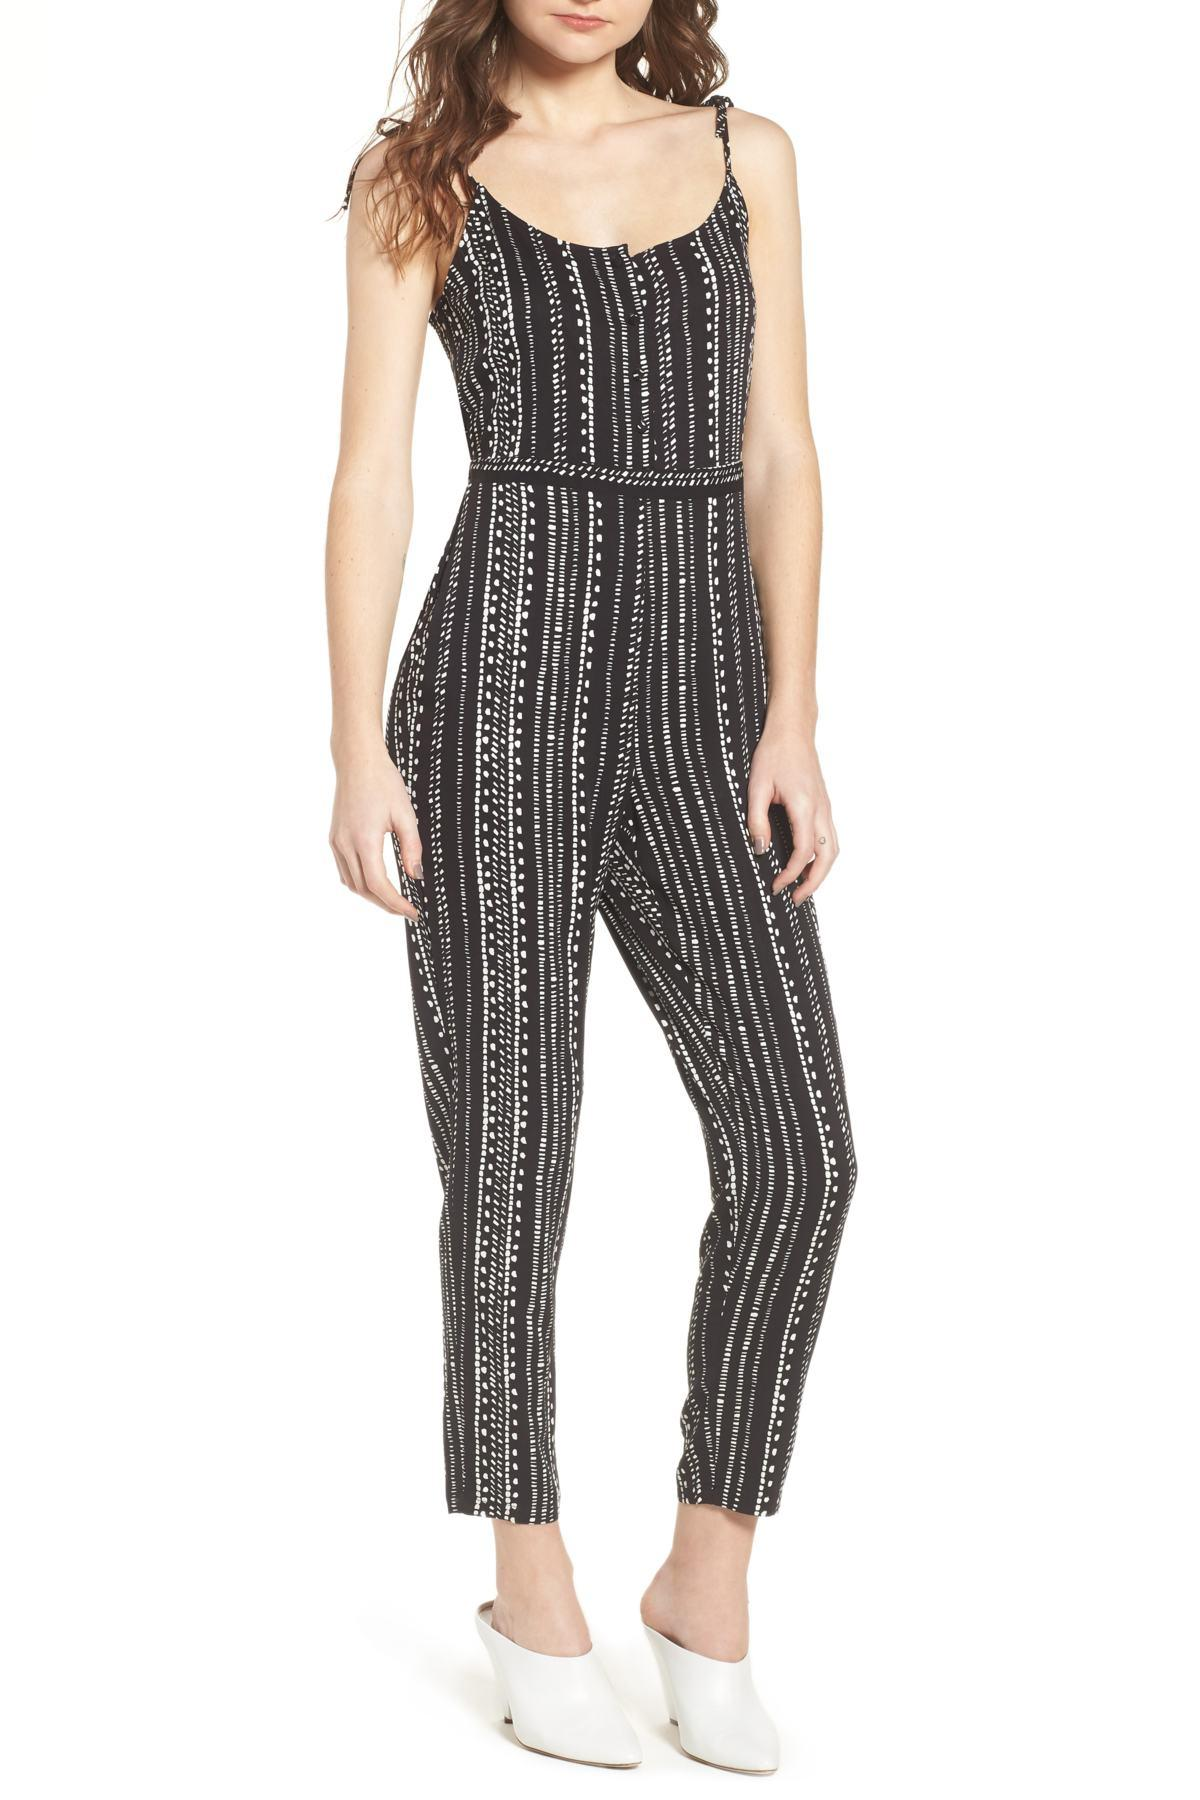 f14075a38456 Lyst - Cupcakes And Cashmere Callia Jumpsuit in Black - Save 36%